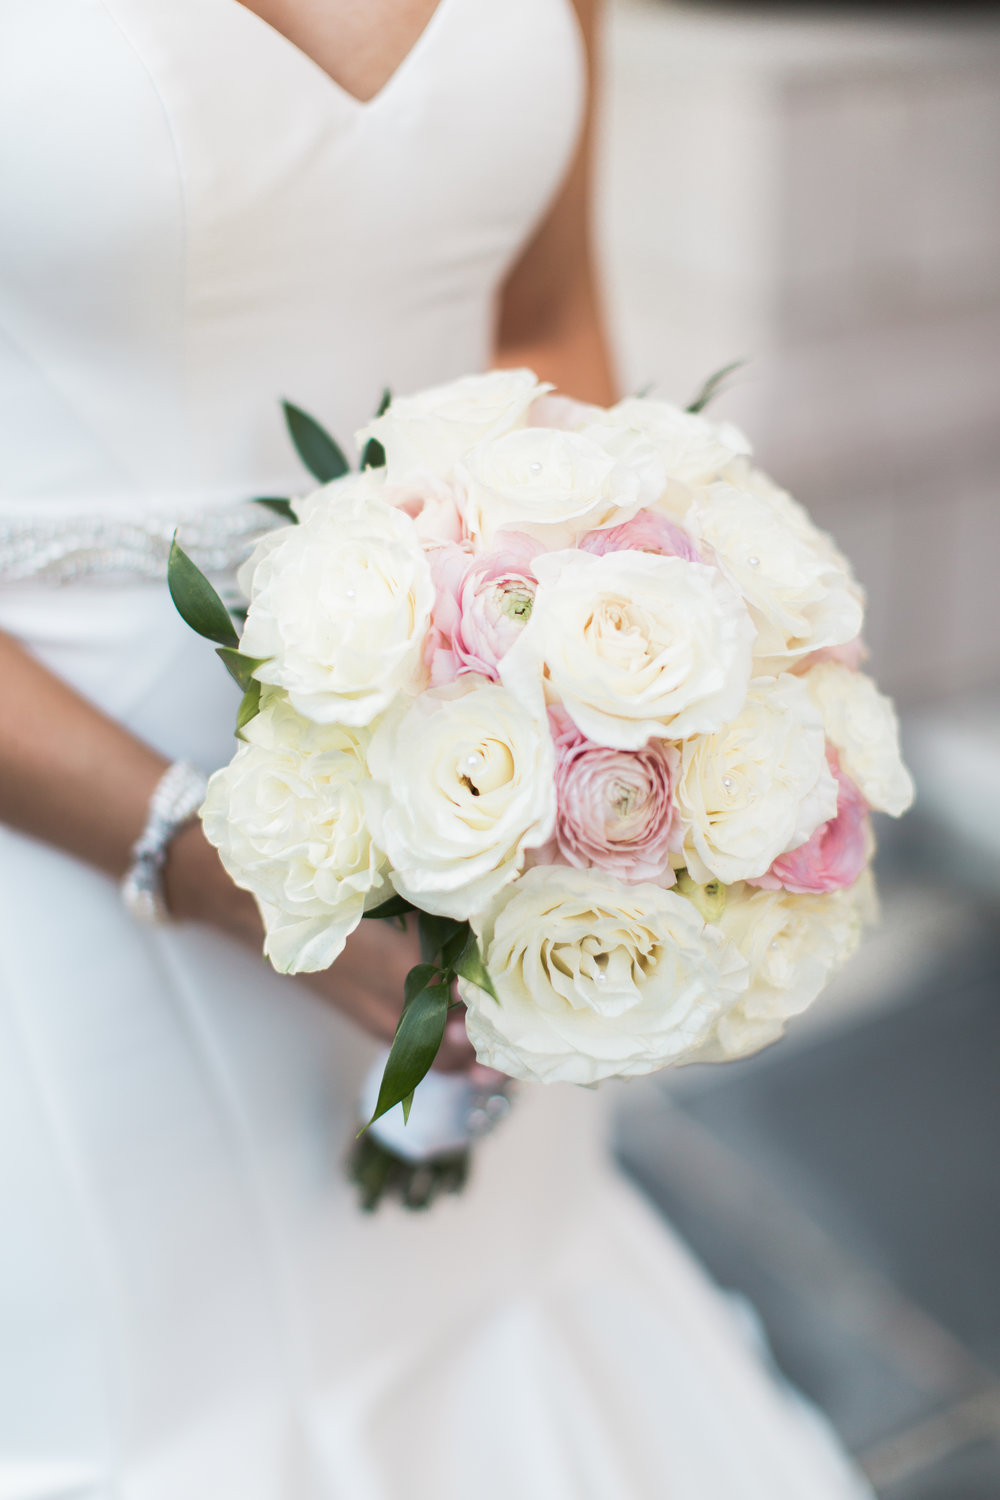 Blush and white Bridal bouquet, all roses